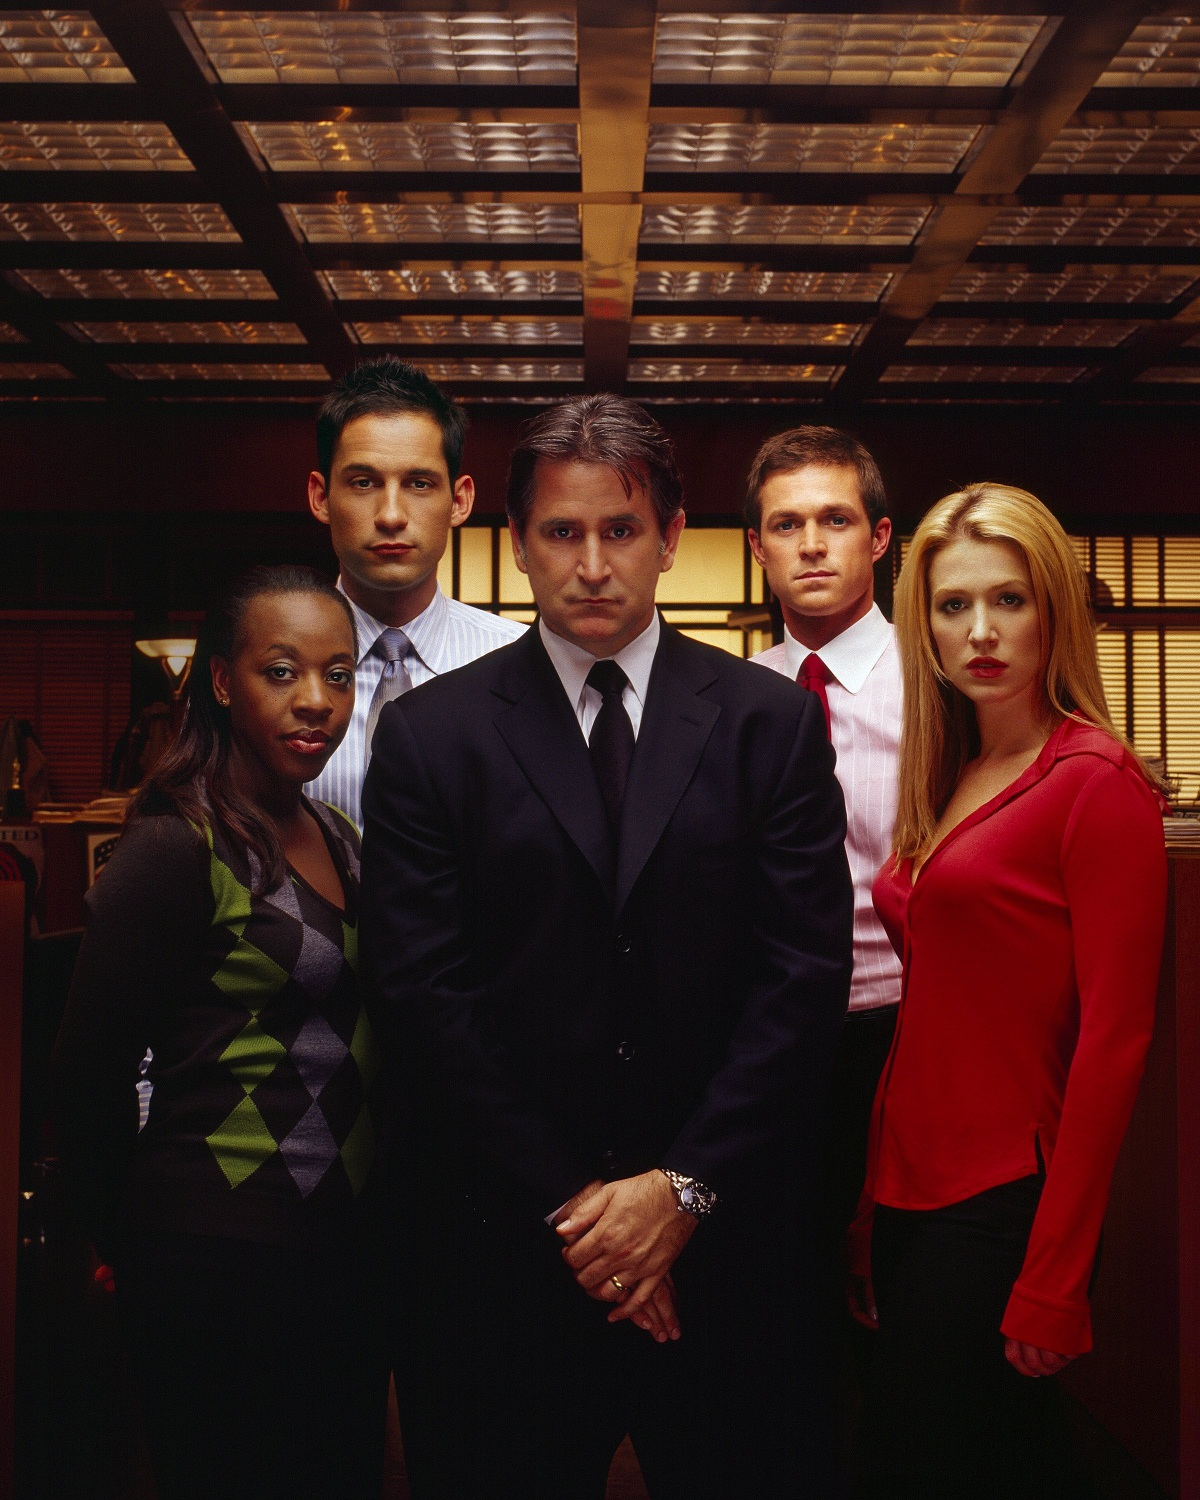 FOX Crime_Without a trace_Season 2